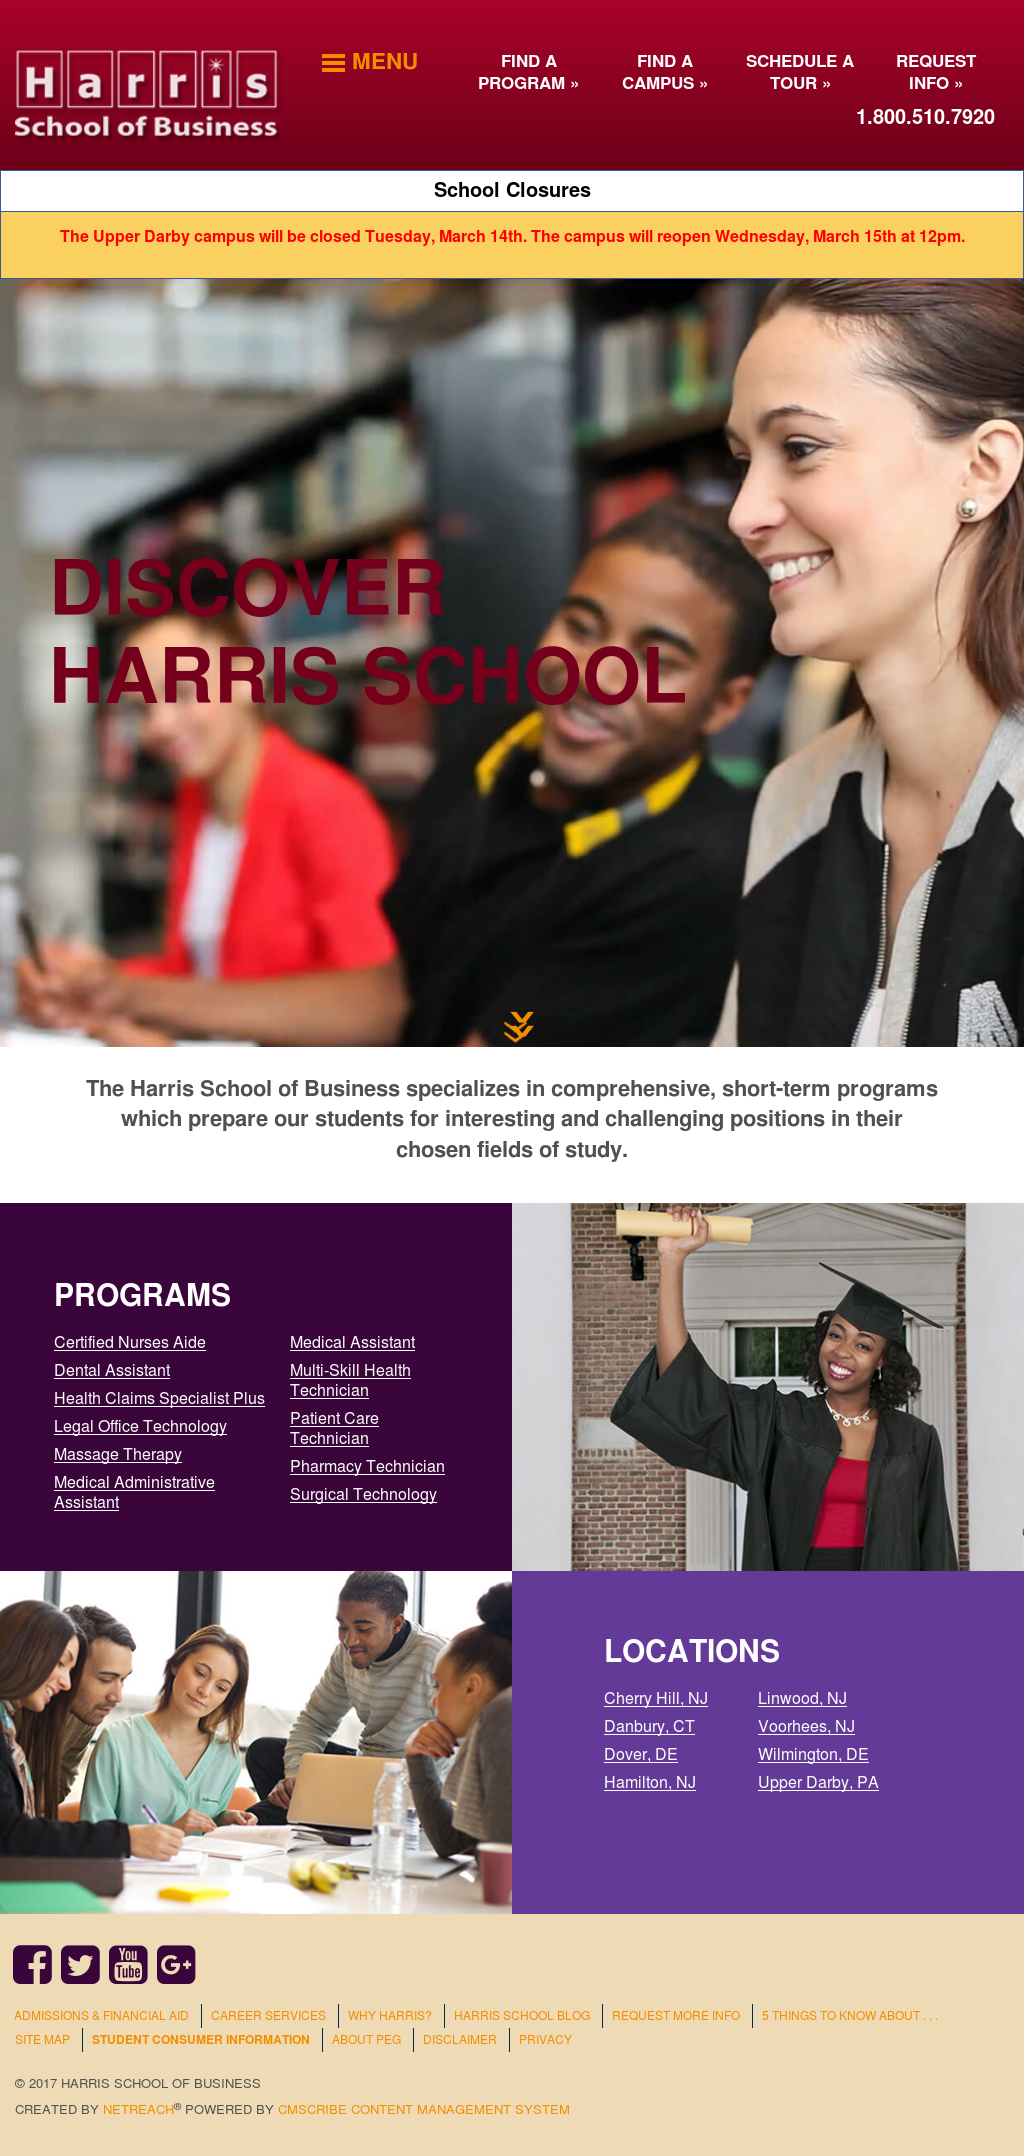 Harris School of Business Competitors, Revenue and Employees